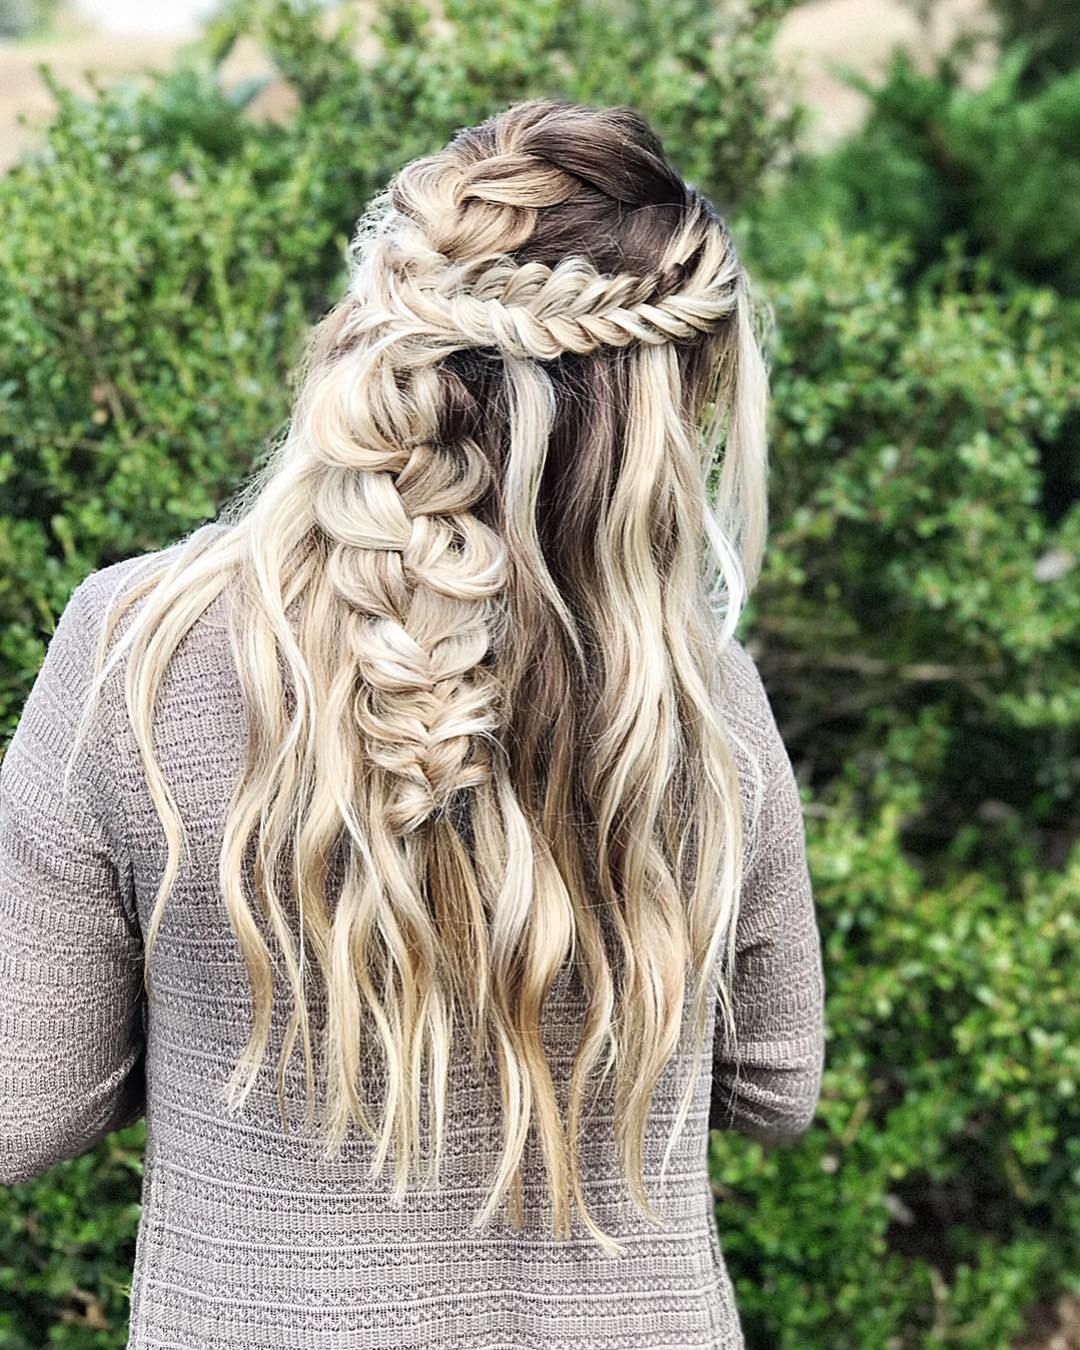 Messy Boho Braid Hairstyles to Try , fishtail braid half up half down hairstyle,Boho Hairstyles Ideas#hairstyle #boho